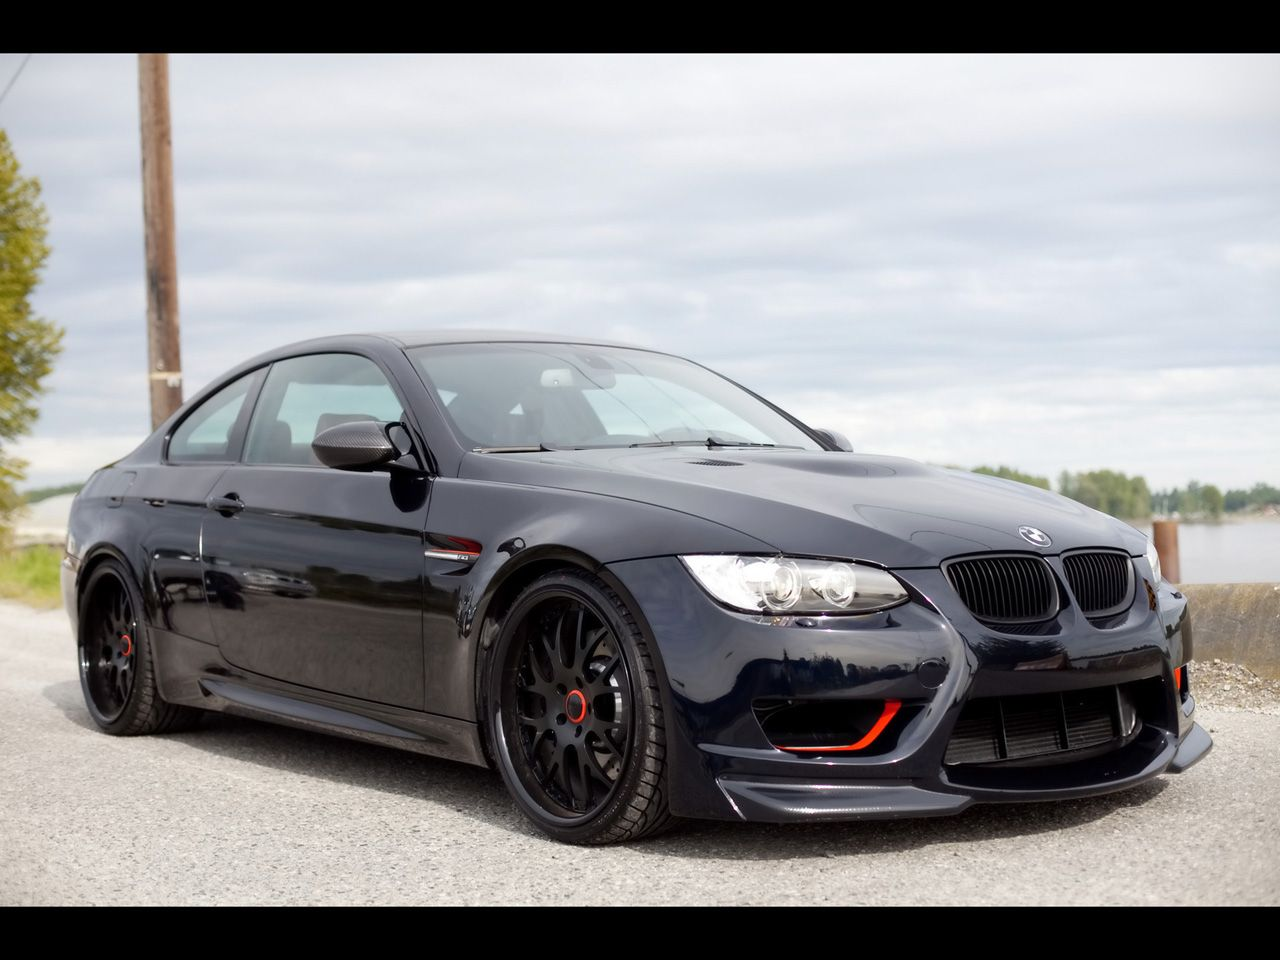 Perfect 2009 BMW E92 M3 Darth Maul By MW Design Technik | Can Stay In The Driveway  | Pinterest | BMW, Cars And BMW M3